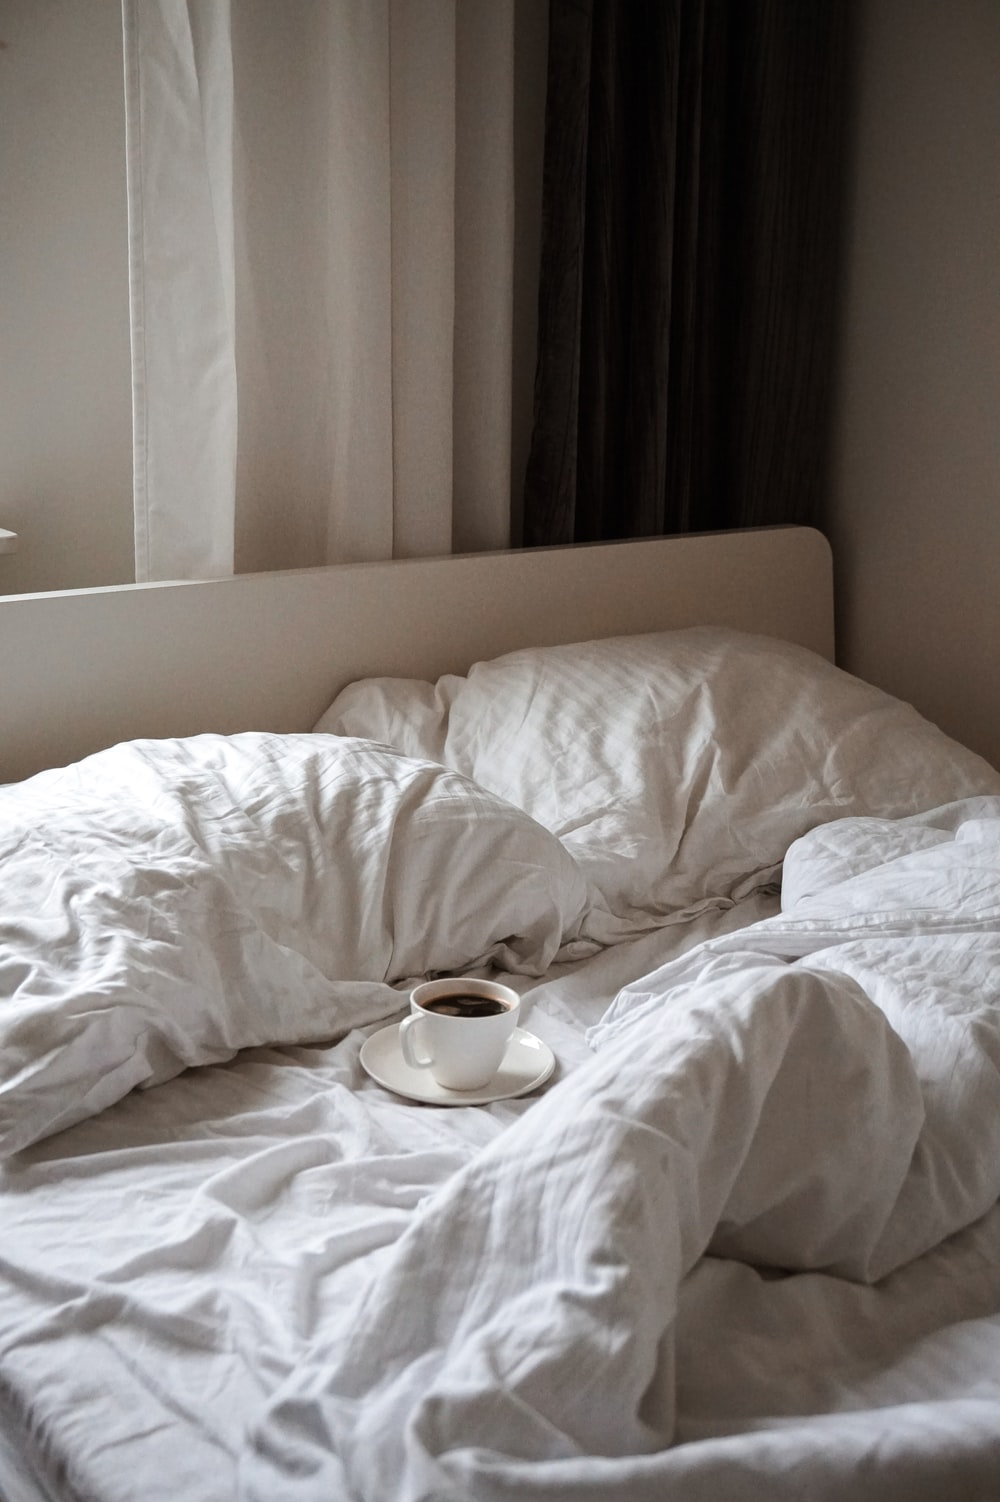 coffee on cup on bed